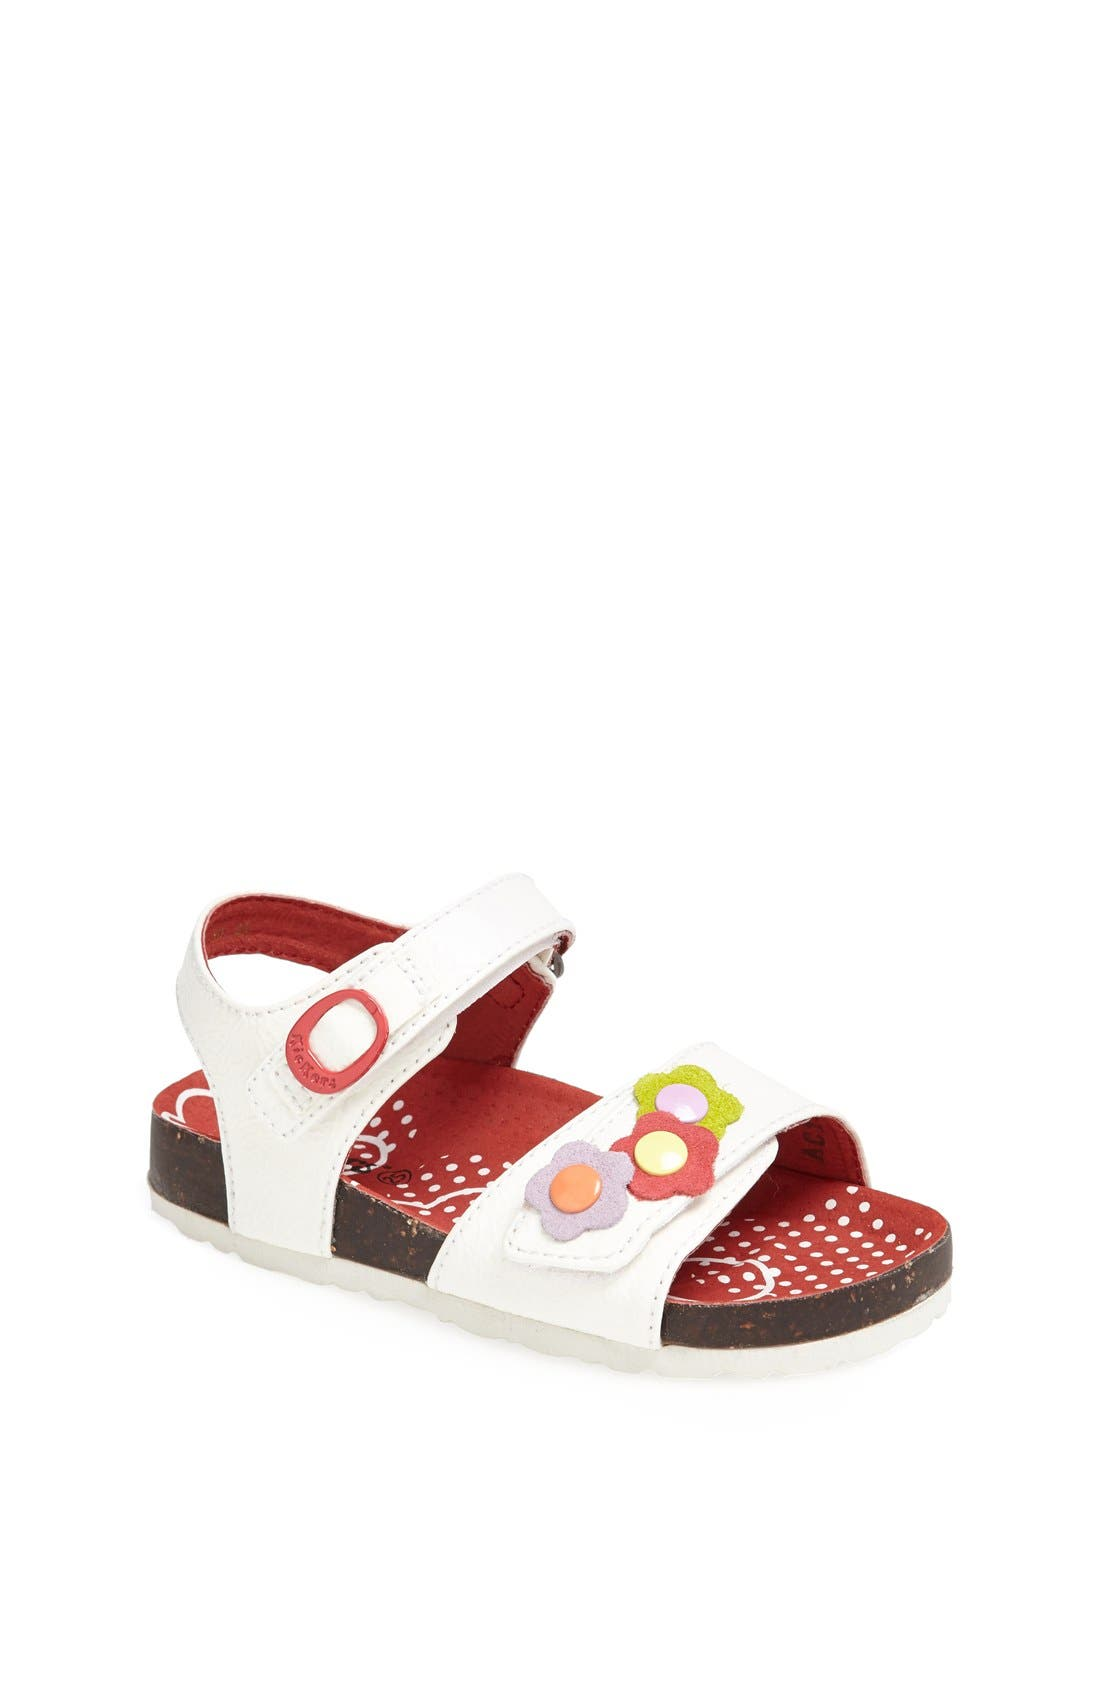 Main Image - Kickers 'Magiflower' Sandal (Toddler, Little Kid & Big Kid)